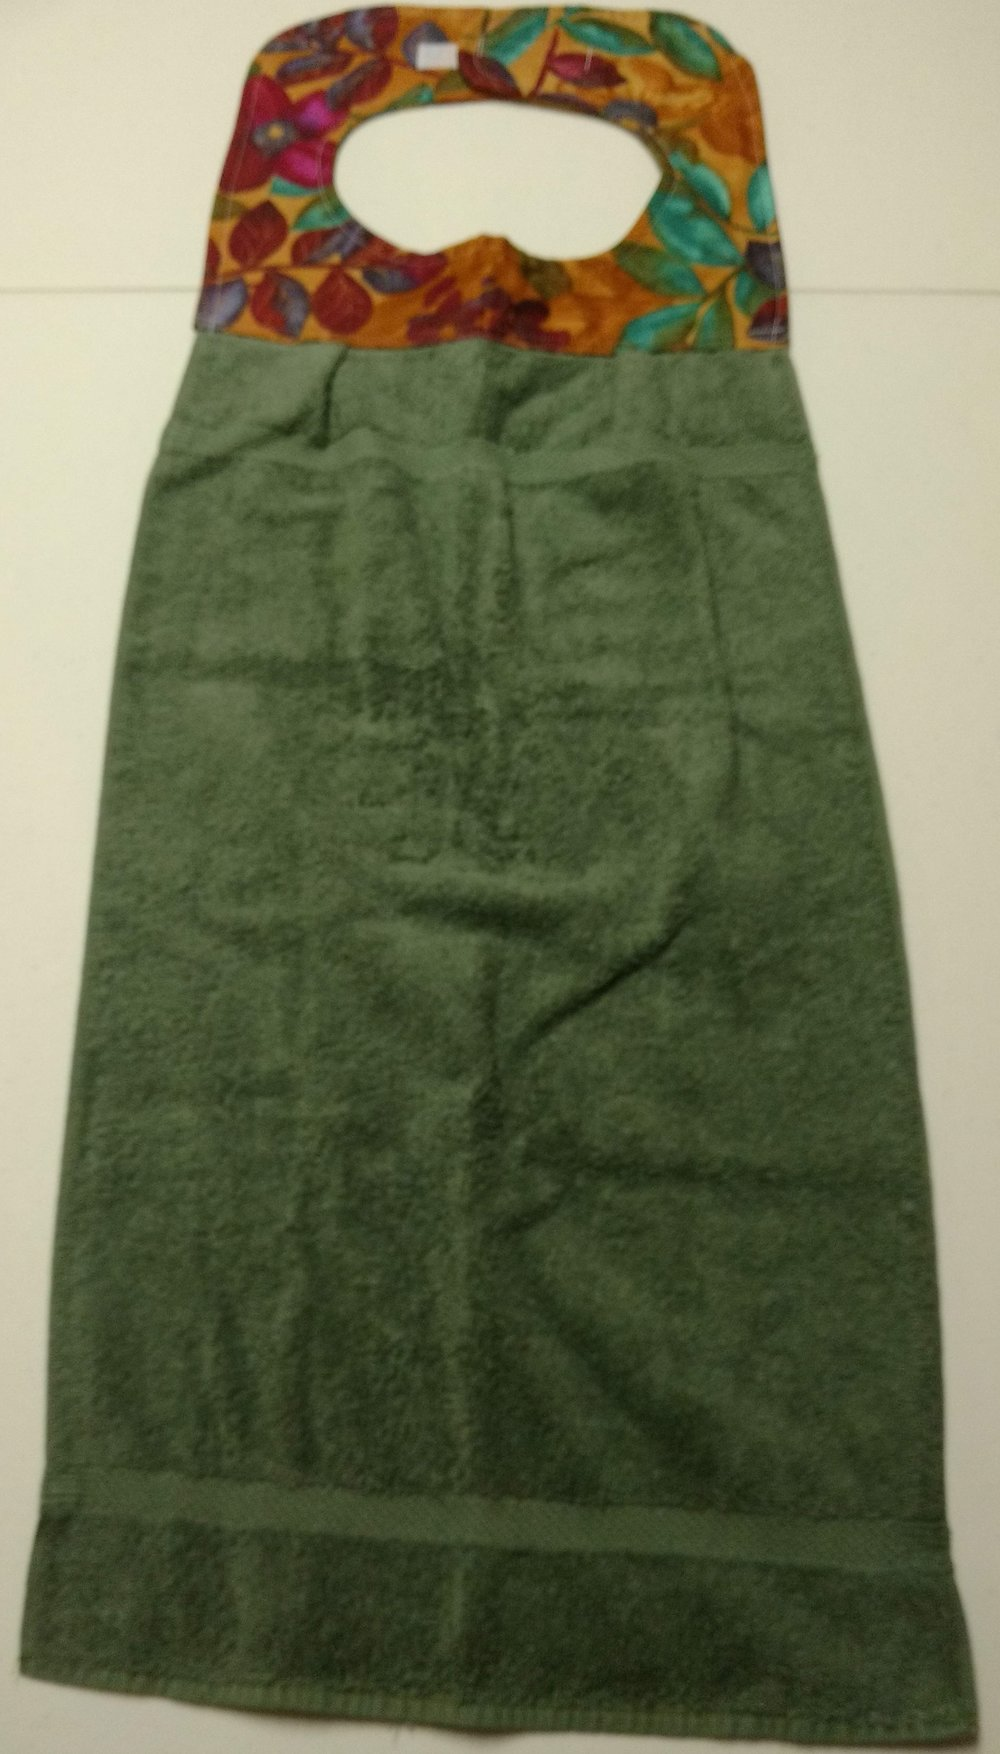 Green Clothing Protector cropped.jpg